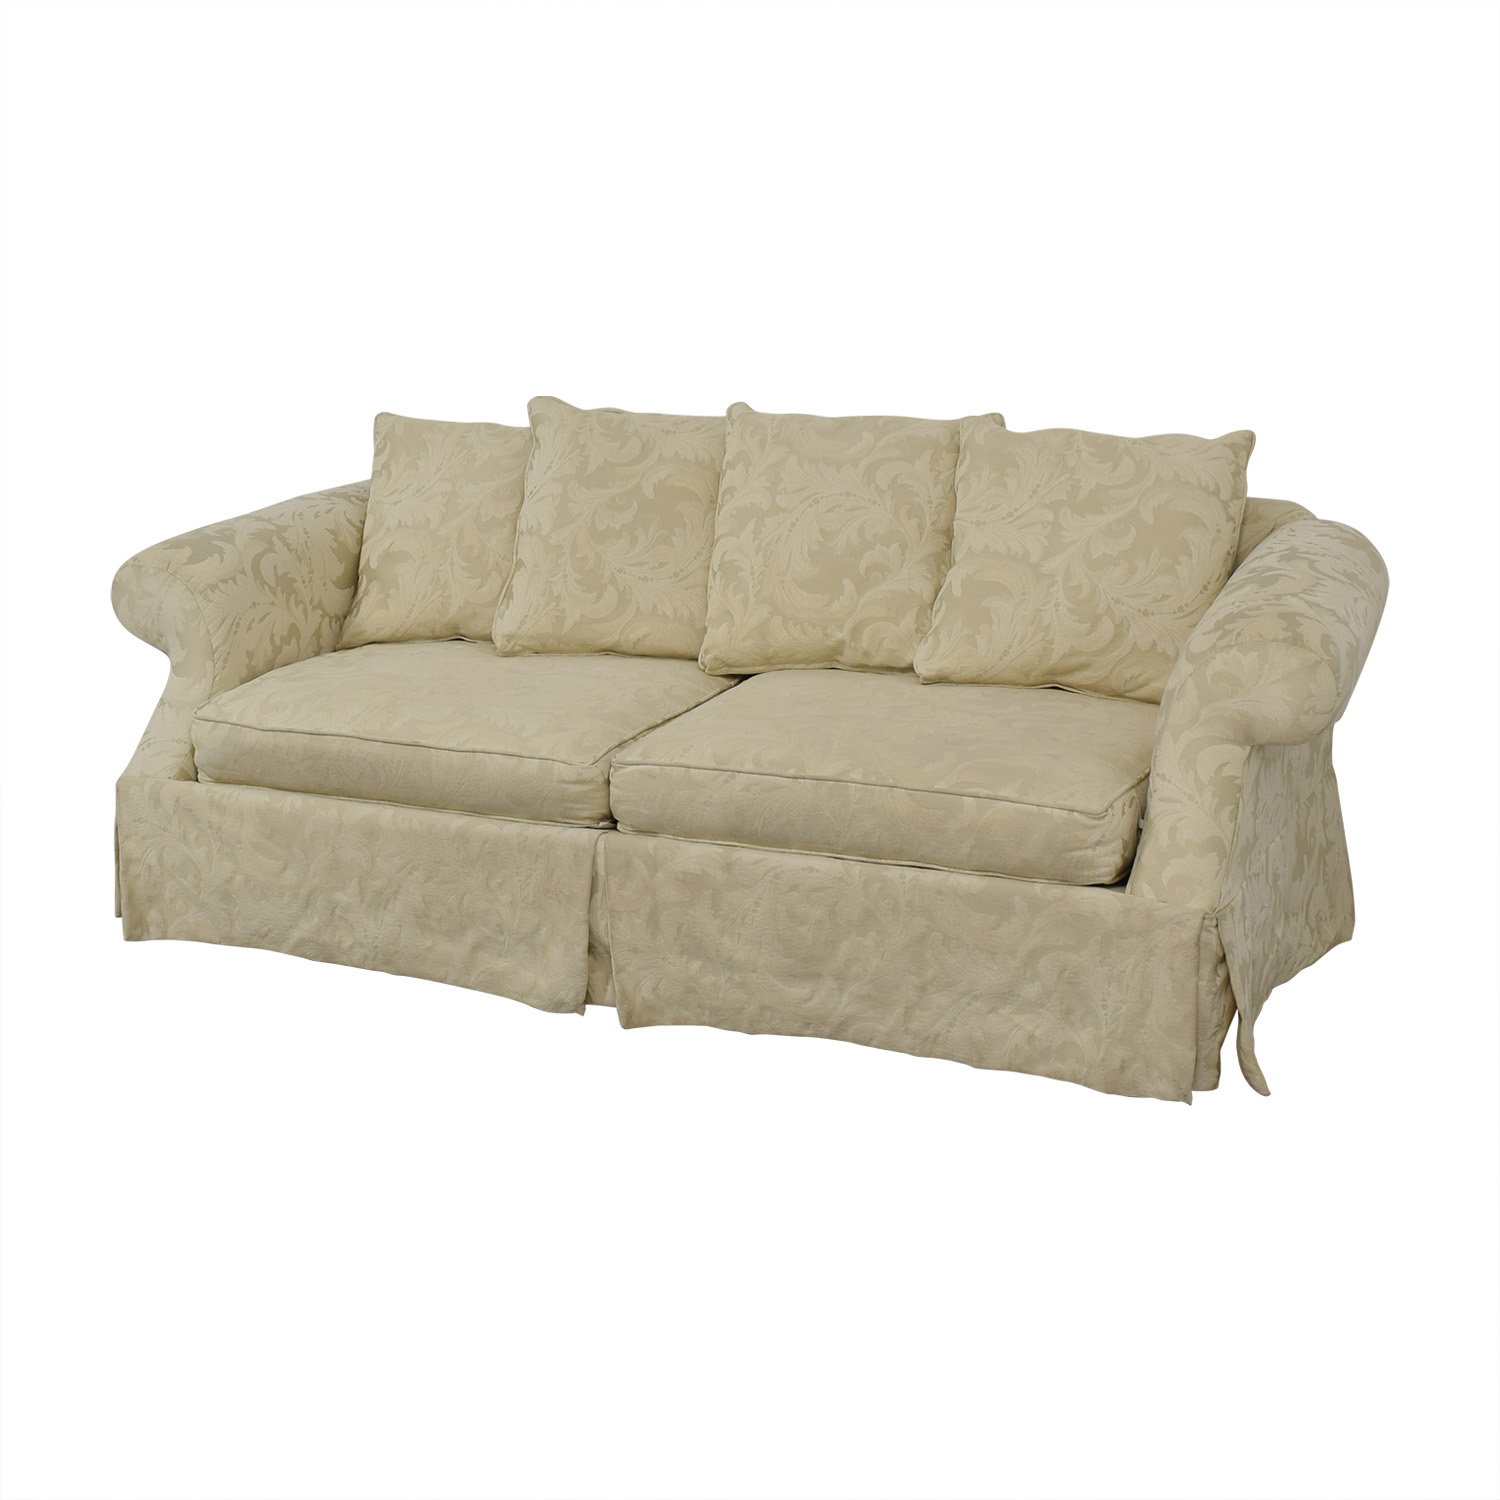 Rowe Furniture Rowe Furniture Roll Arm Sofa Classic Sofas